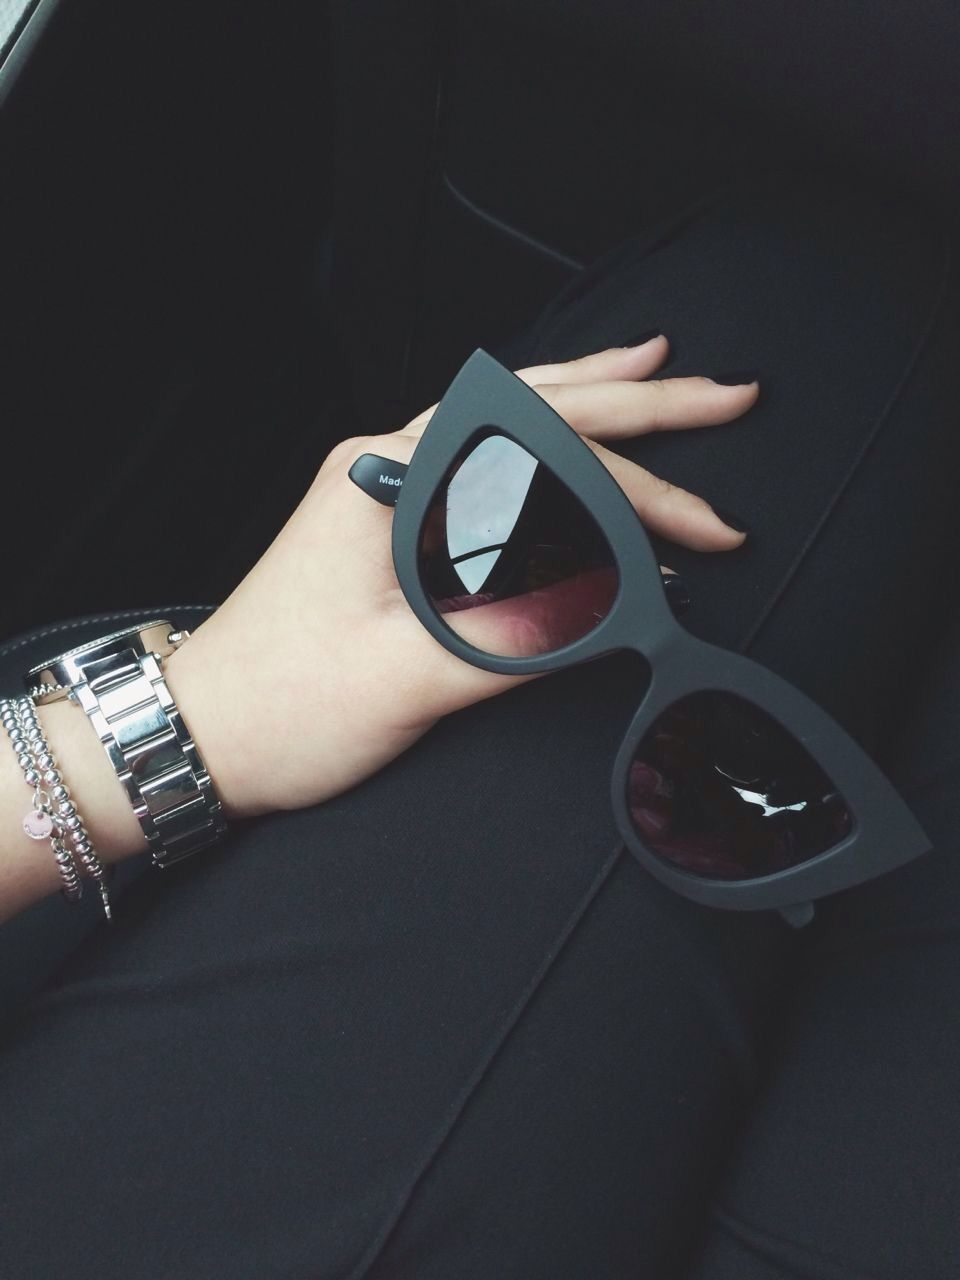 Keep your sunglasses functional and stylish. Always go for a frame that flatters your face. Square face, choose a rounded frame. Round face, choose a more angular frame.